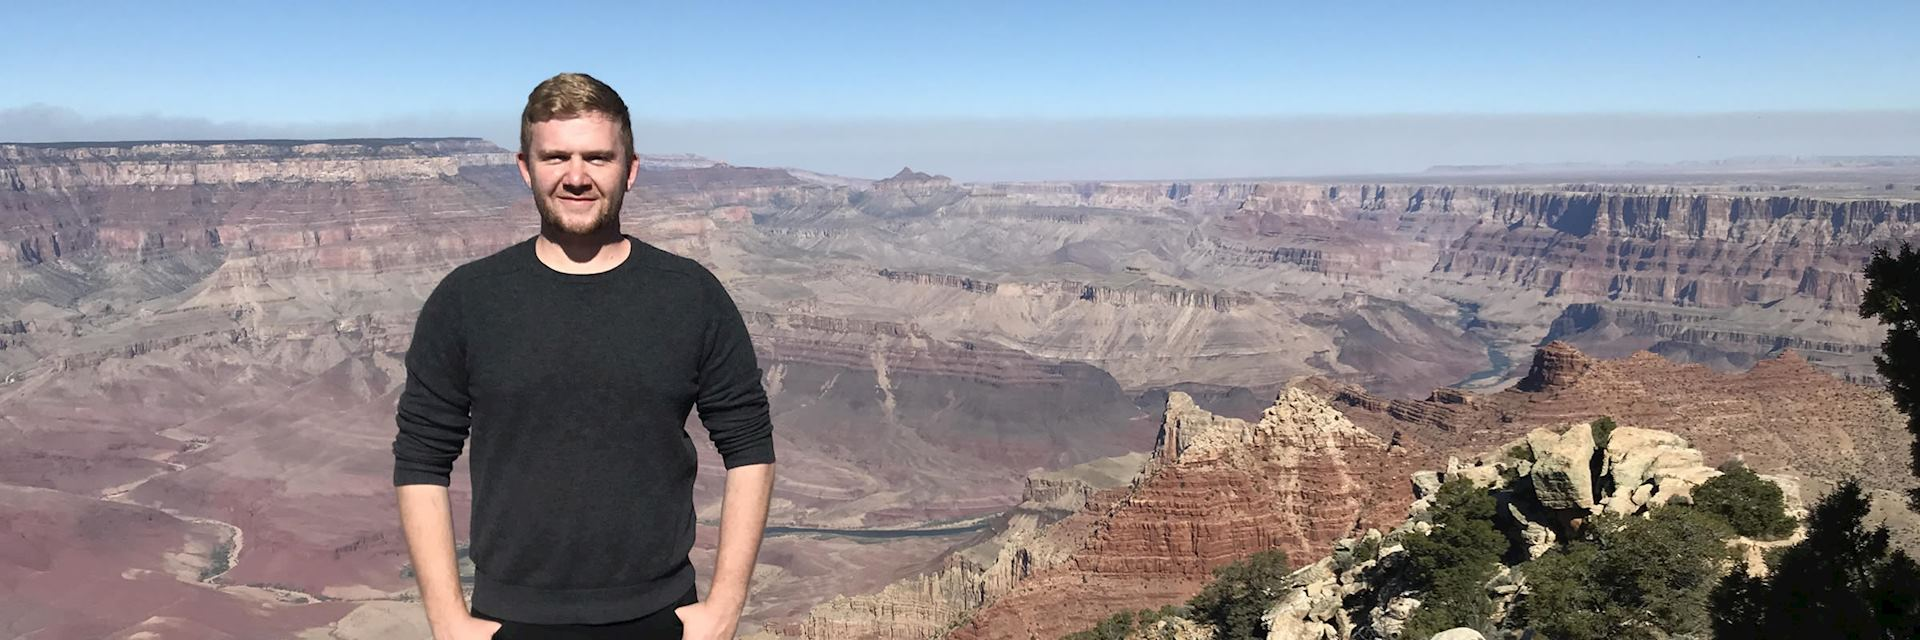 Alex in the Grand Canyon